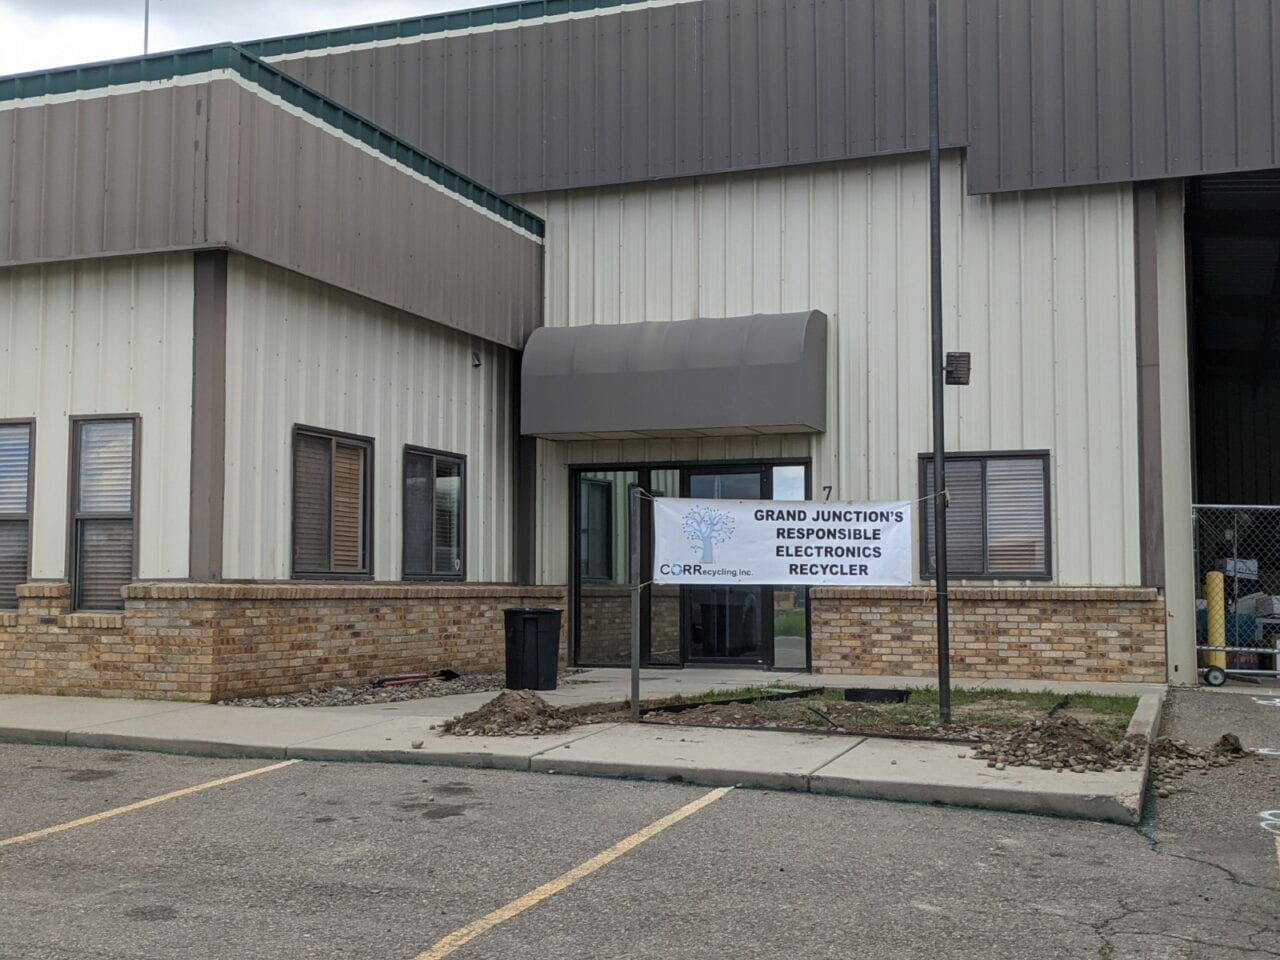 Correcycling, Inc. New Building in Grand Junction